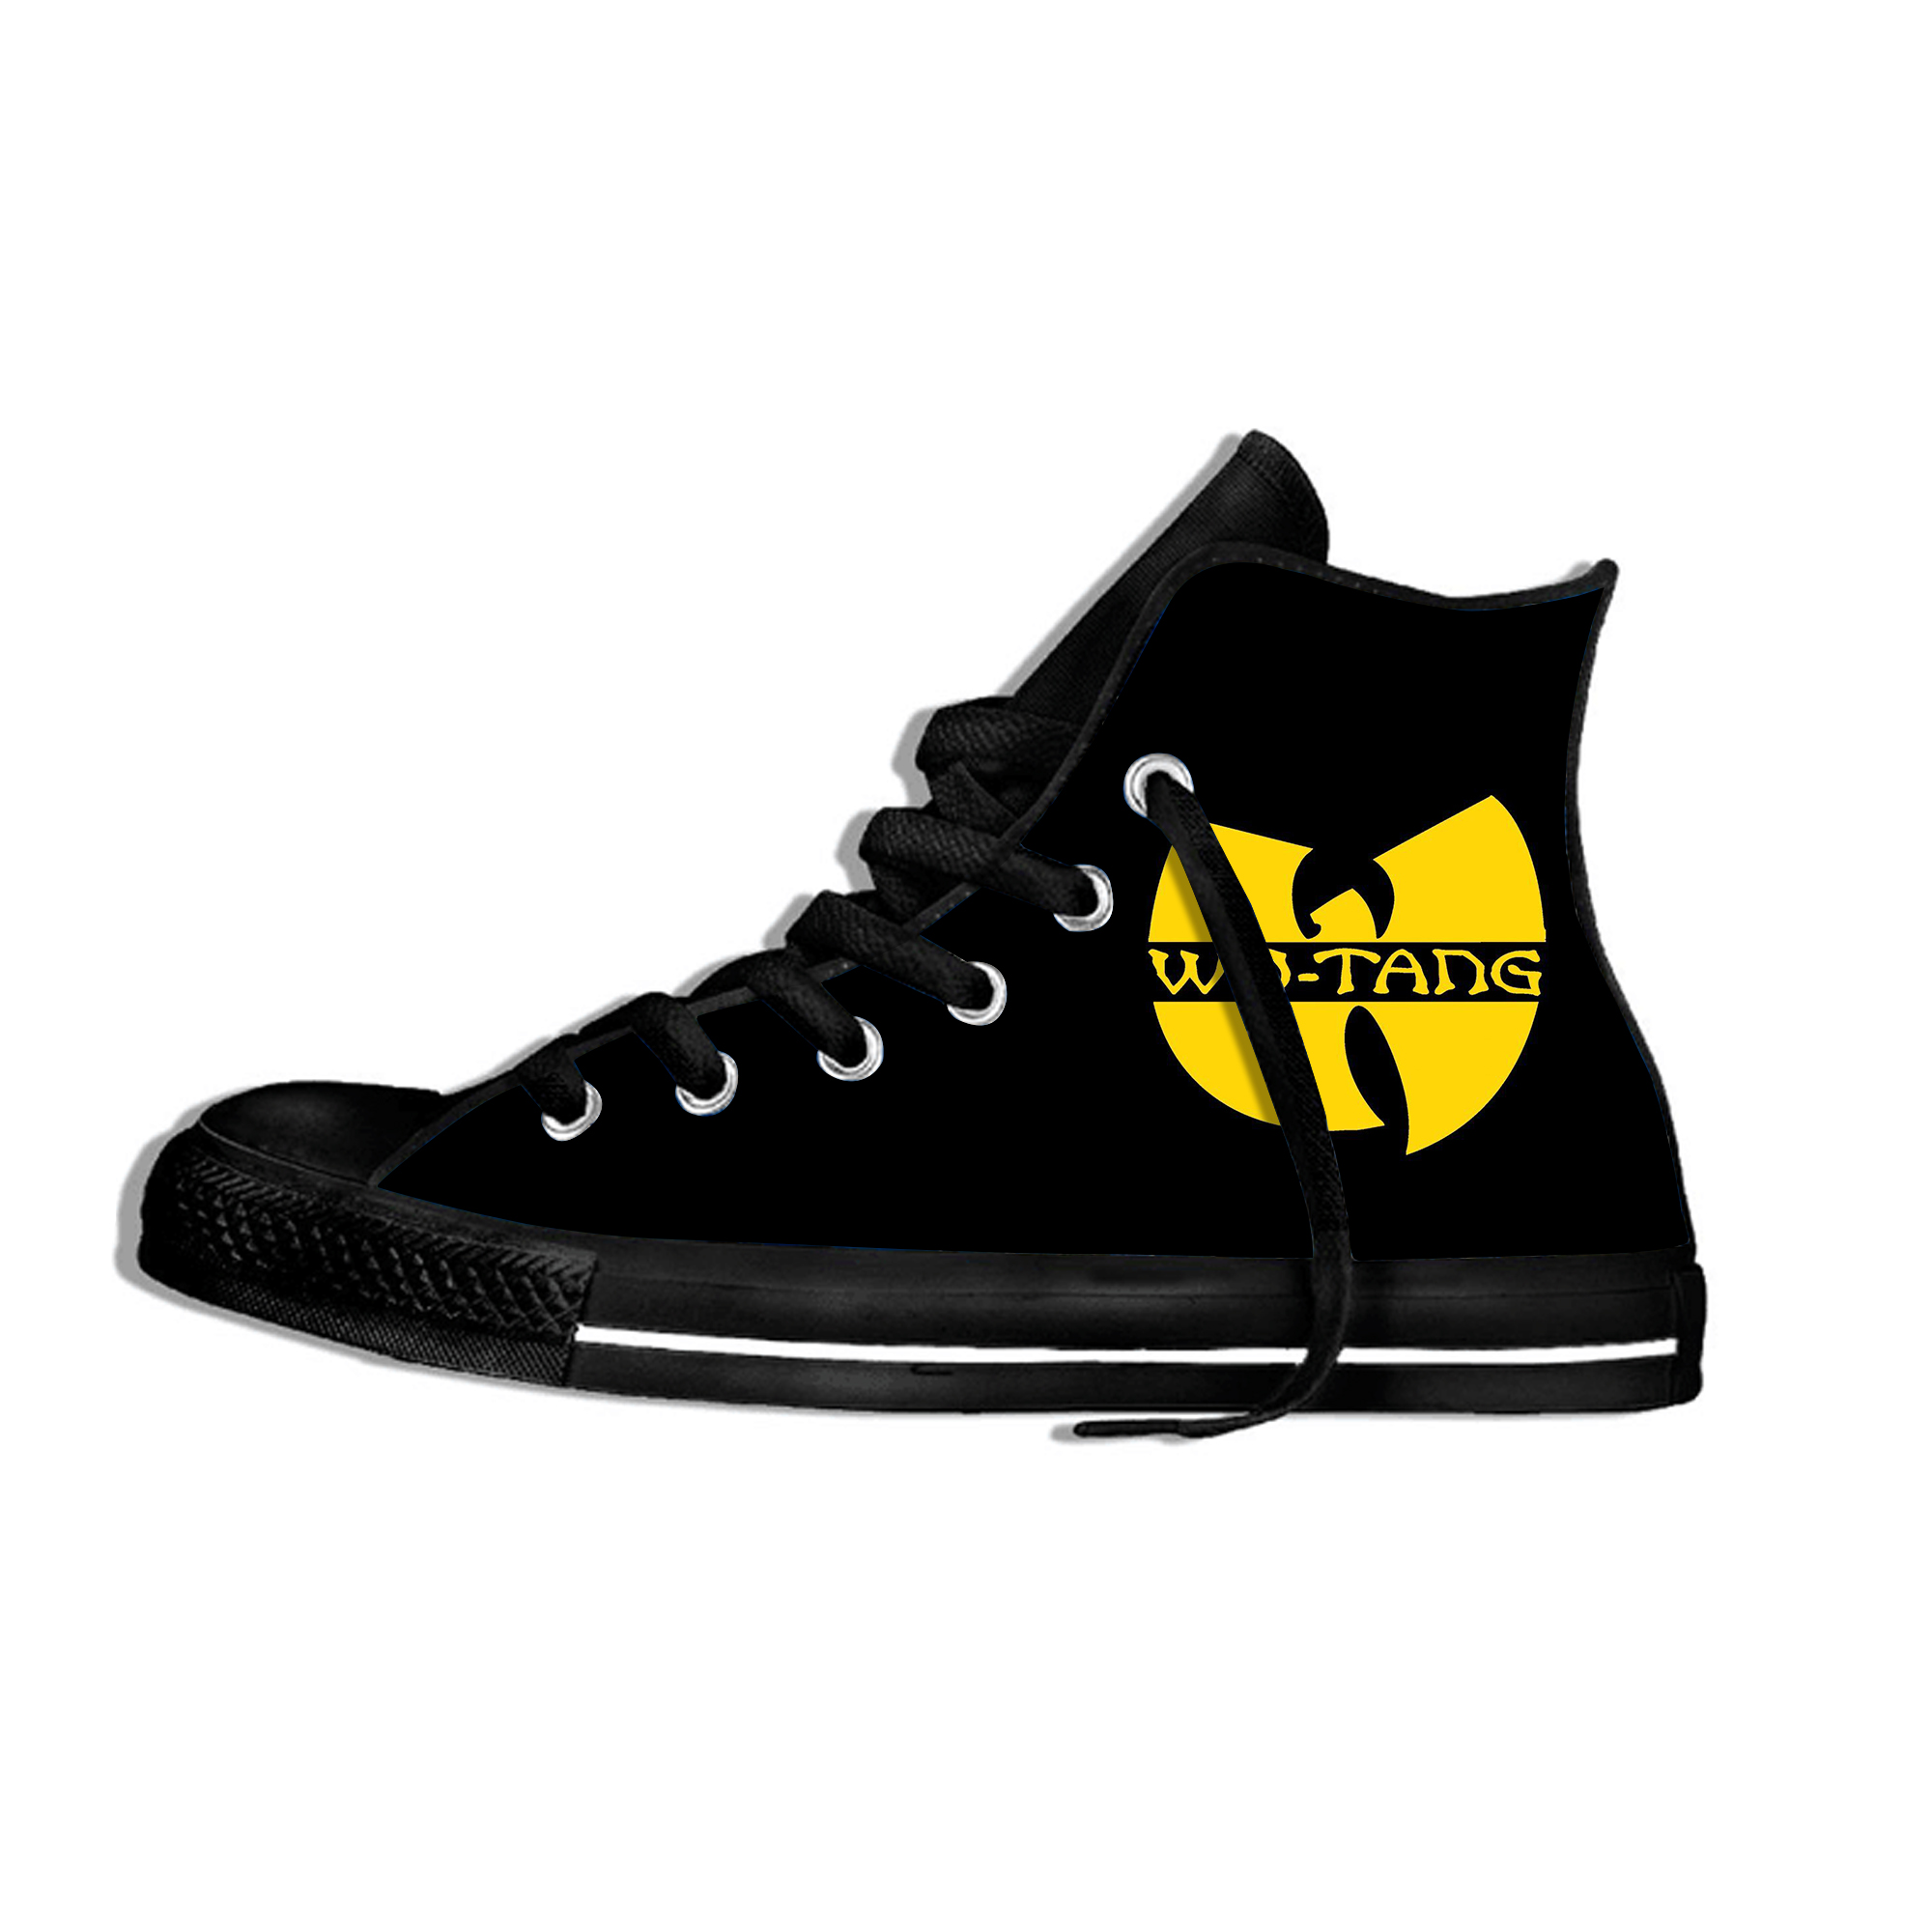 2019 New Fashion Music Band Wu Tang Breathable Shoes Unisex  Walking Comfortable Lightweight High Top Sneakers